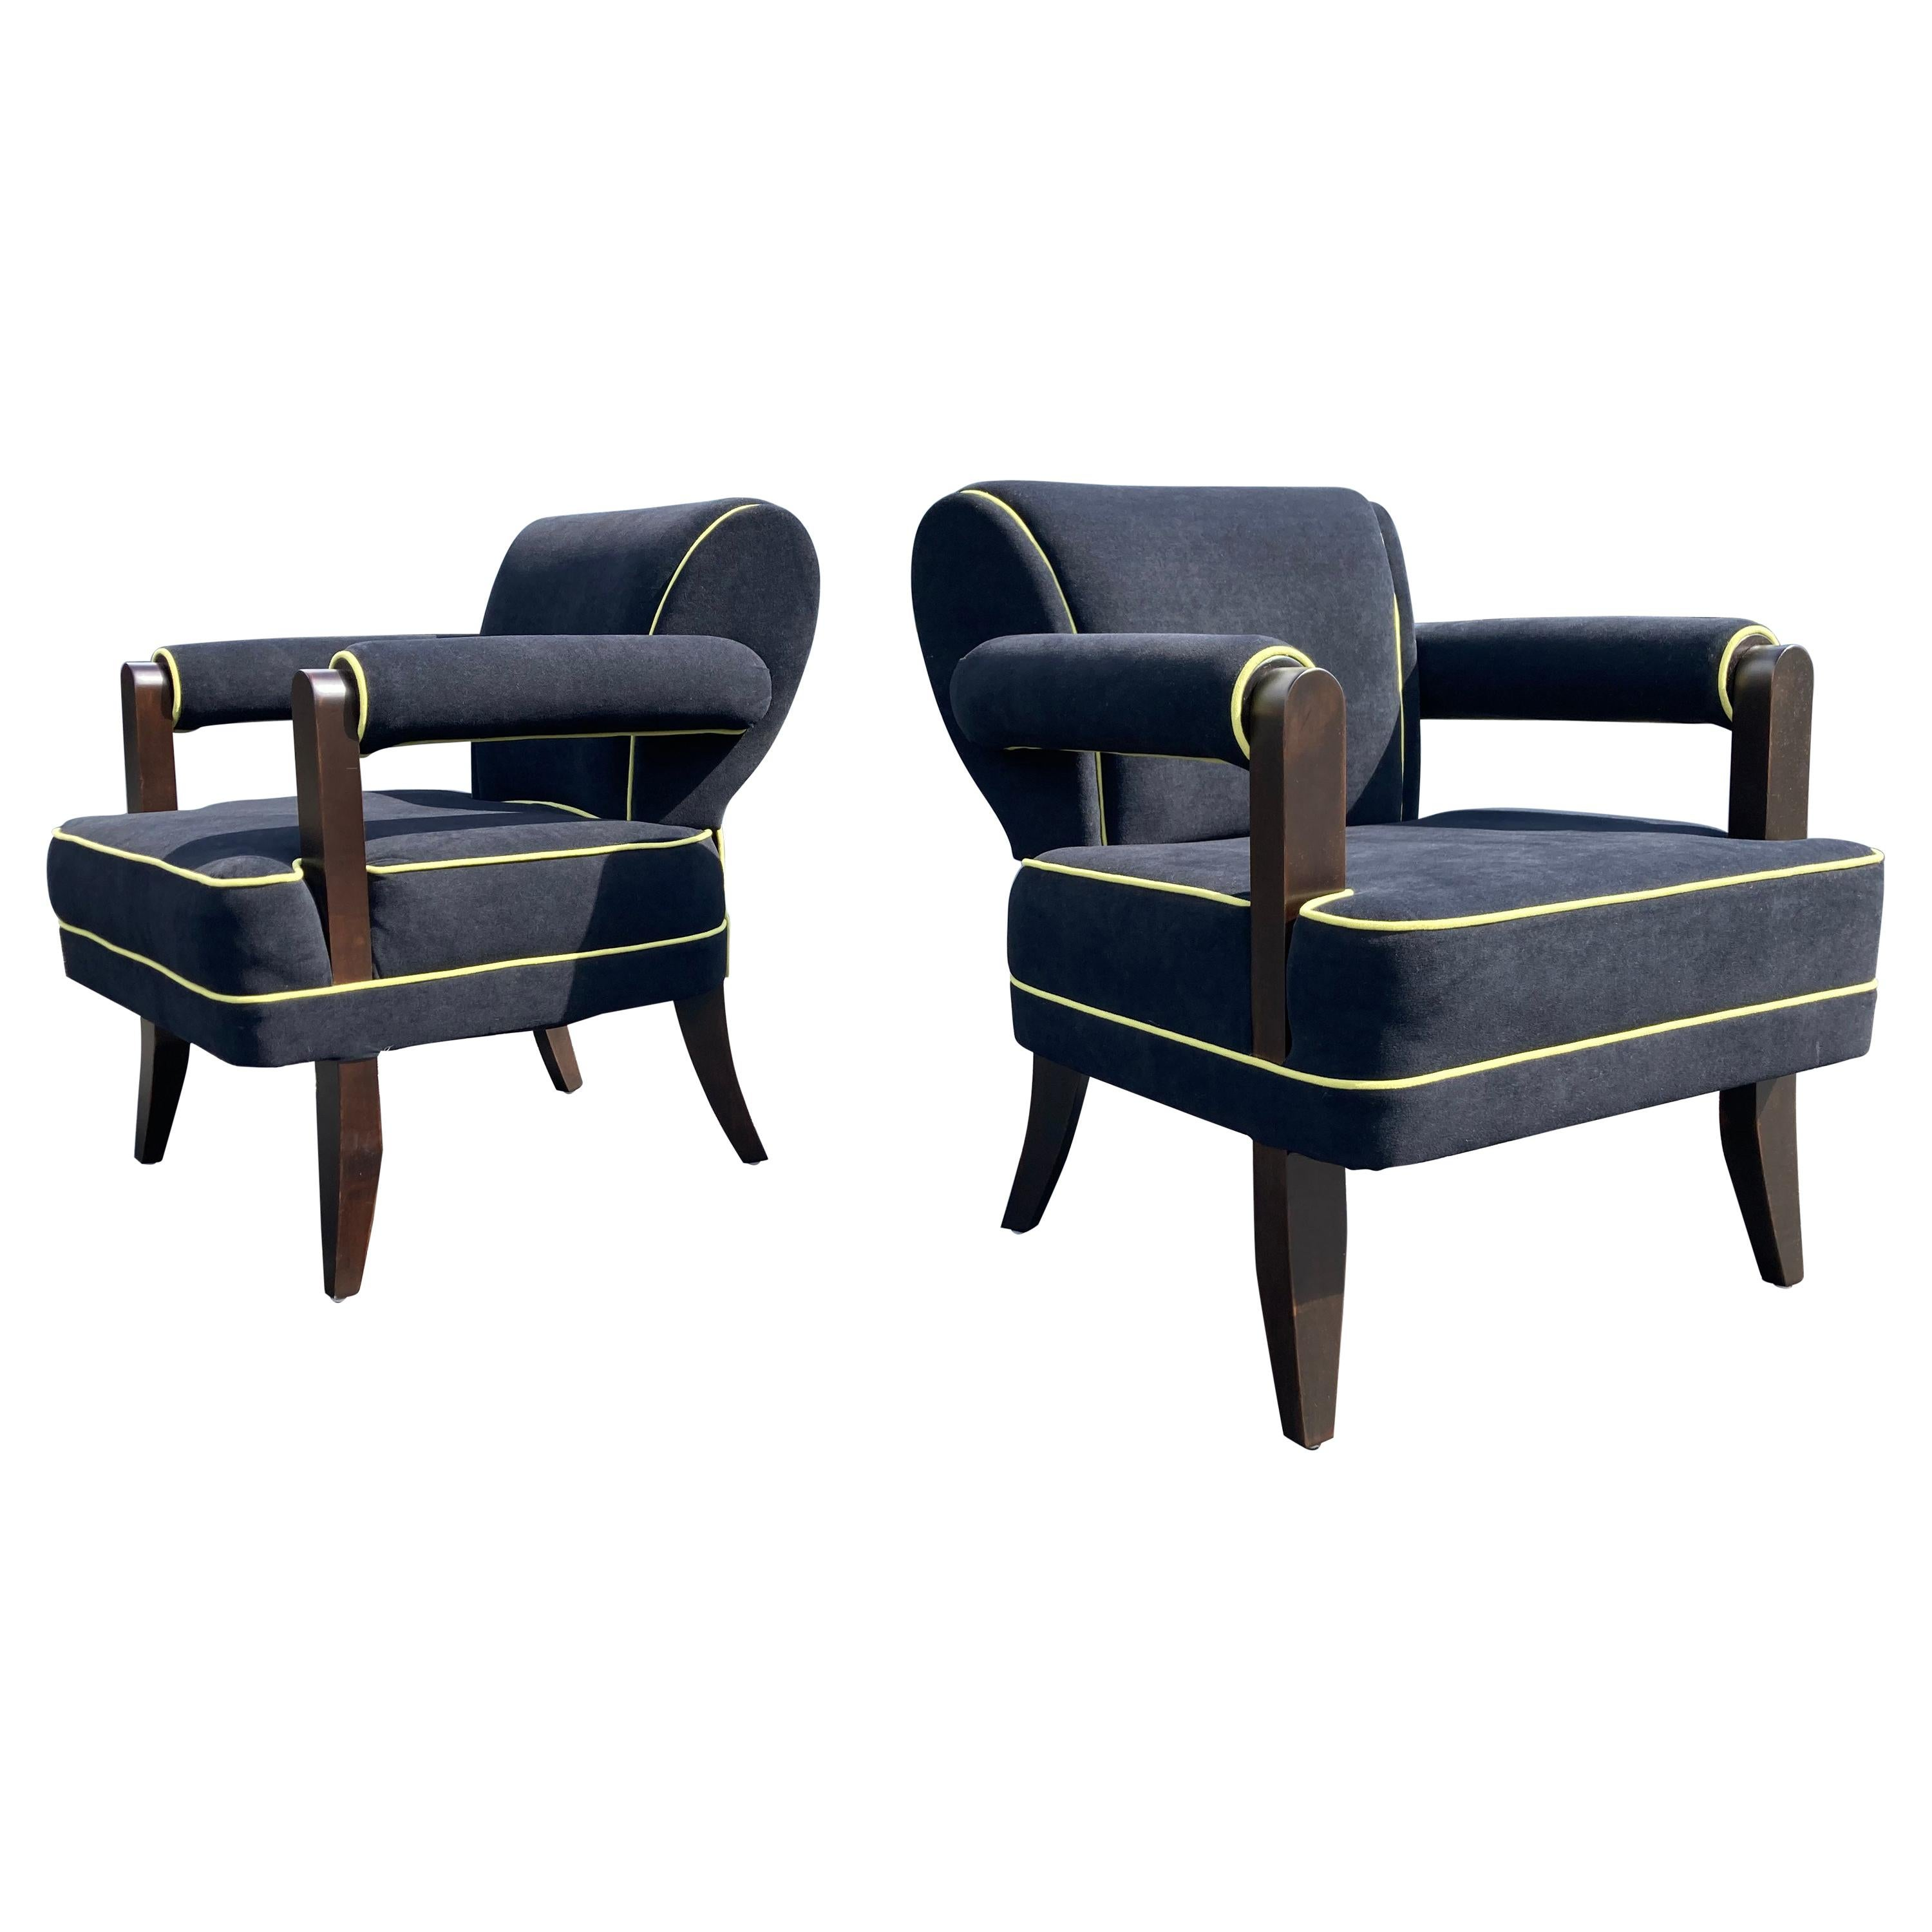 Pair of Lounge Chairs by Larry Laslo for Directional, Art Deco Style